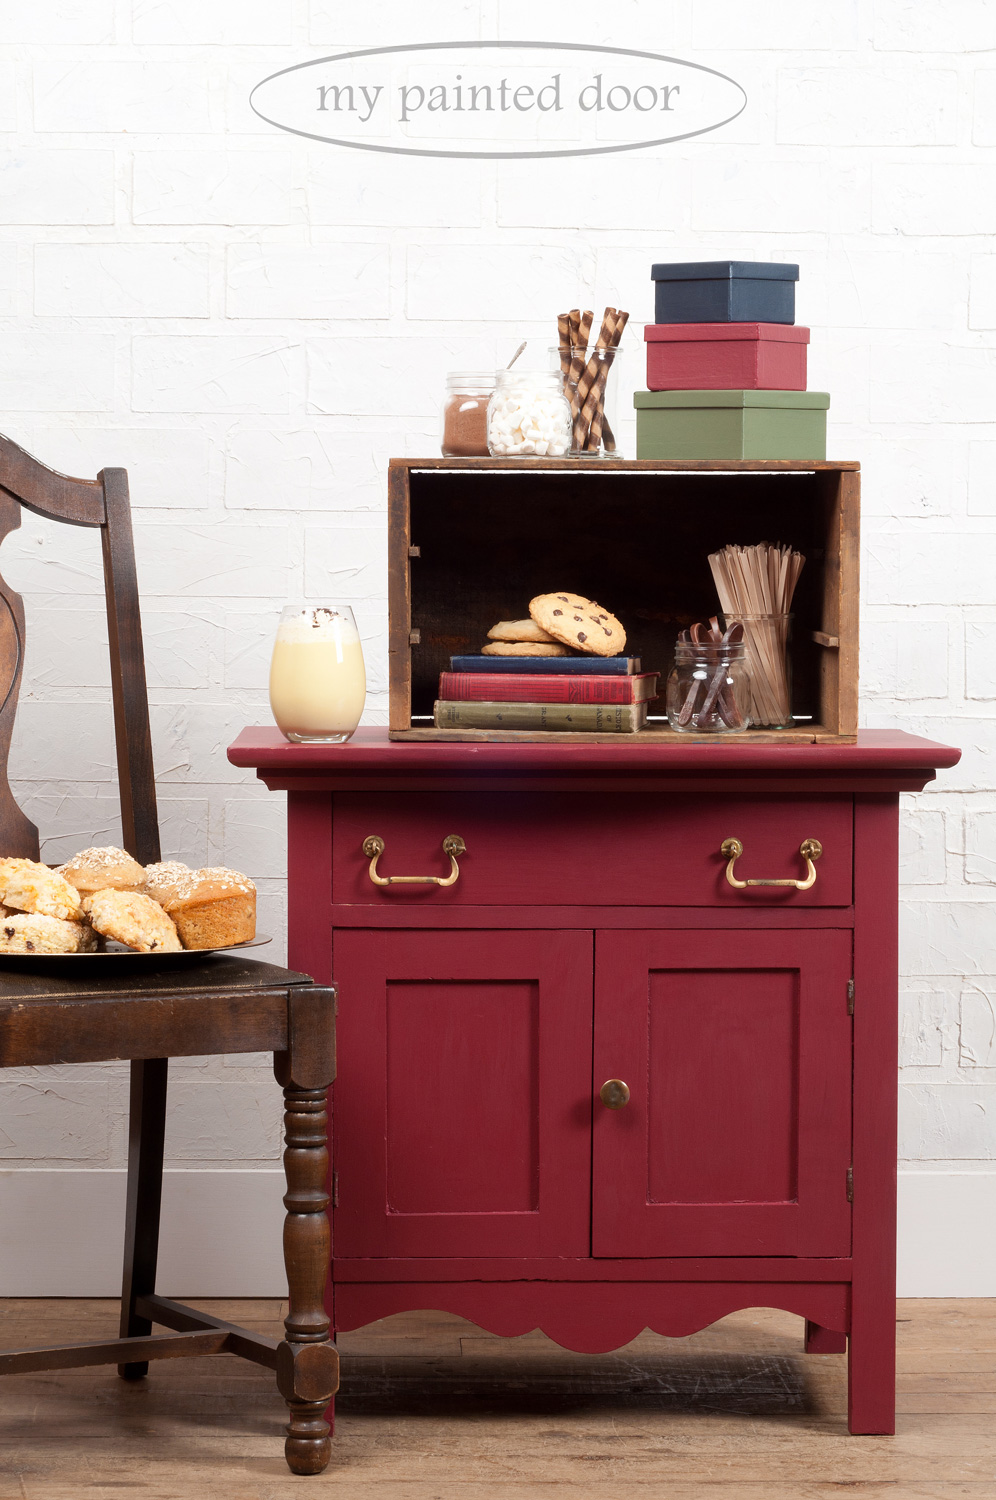 Washstand painted in Fusion Mineral Paint. The colour is Cranberry.